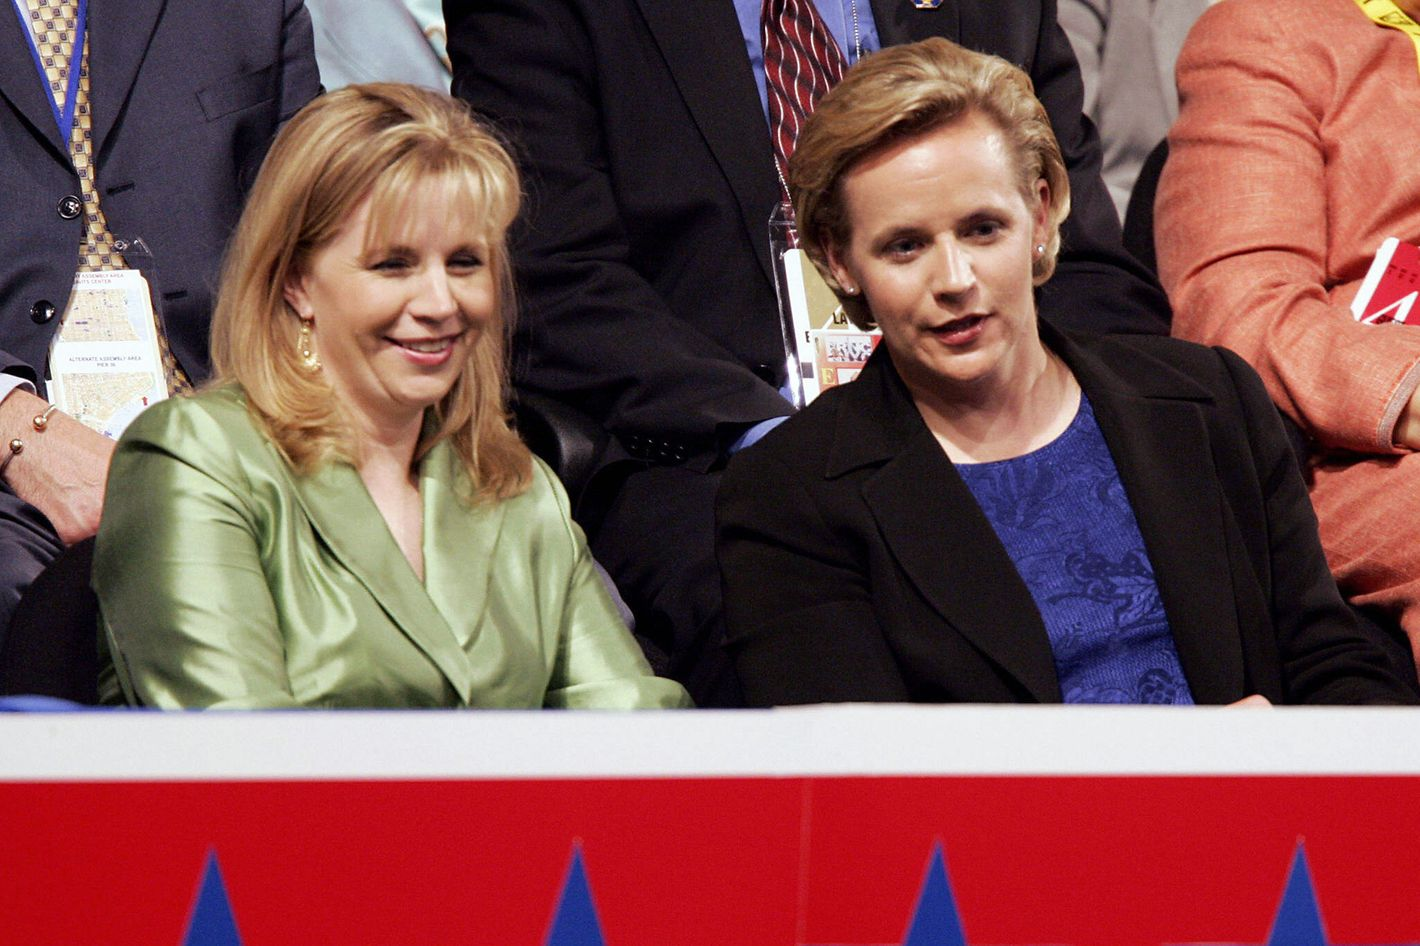 NEW YORK, United States:  Elizabeth(L) and Mary Cheney, daughters of Vice President Dick Cheney attend the Republican National Convention at Madison Square Garden in New York City 01 September, 2004. Convention delegates formally nominated President George W. Bush for another four-year term 31 August and he will accept the party's nomination during a prime-time televised speech 02 September.